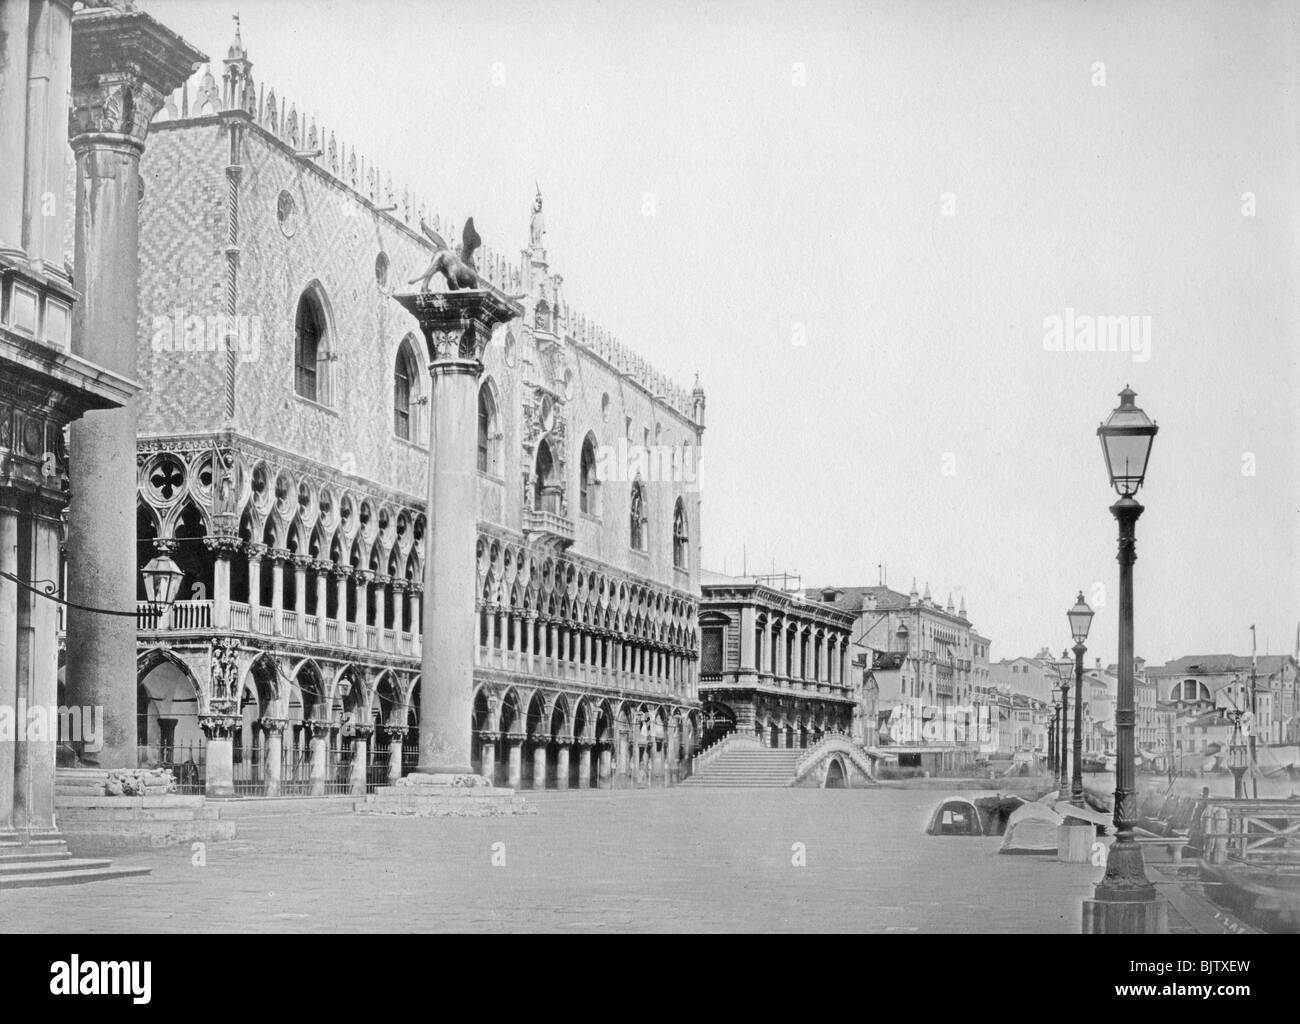 Venice, Italy, late 19th or early 20th century(?). - Stock Image